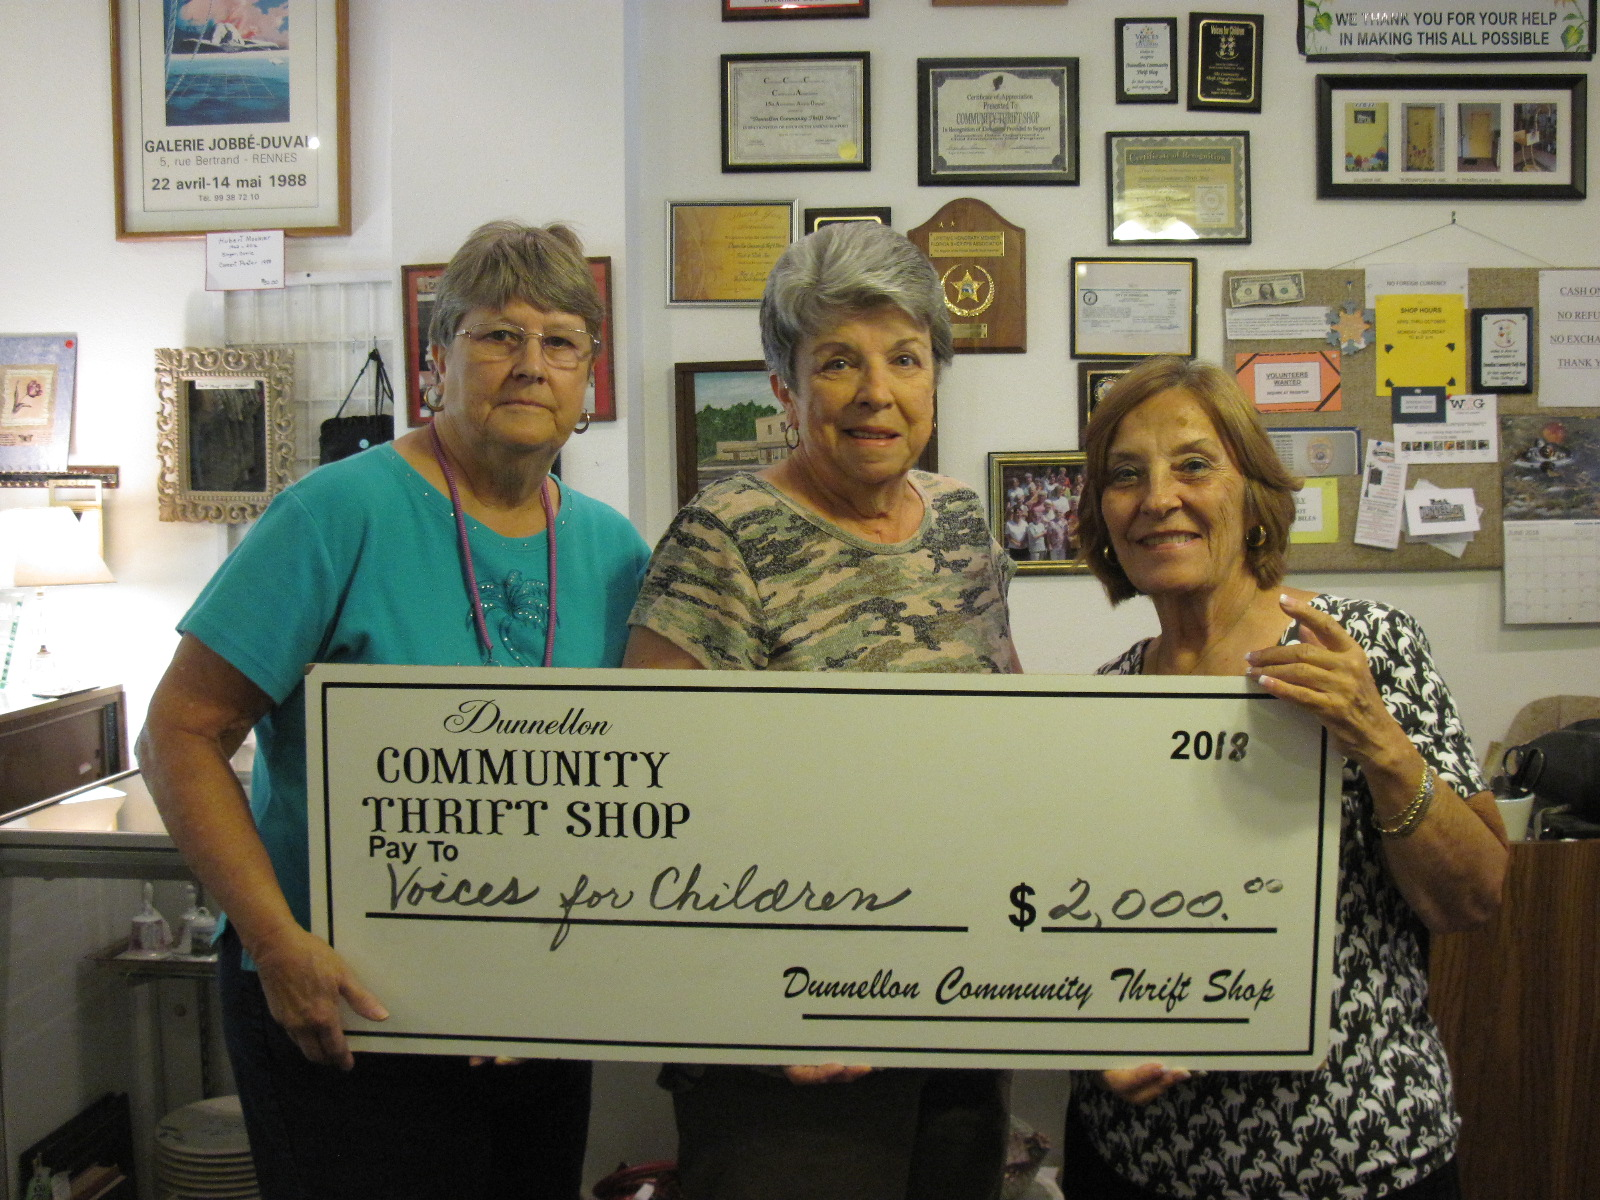 Betsy Schaaf and Arline Keenum of Dunnellon Community Thrift Shop and Sue Carpenter